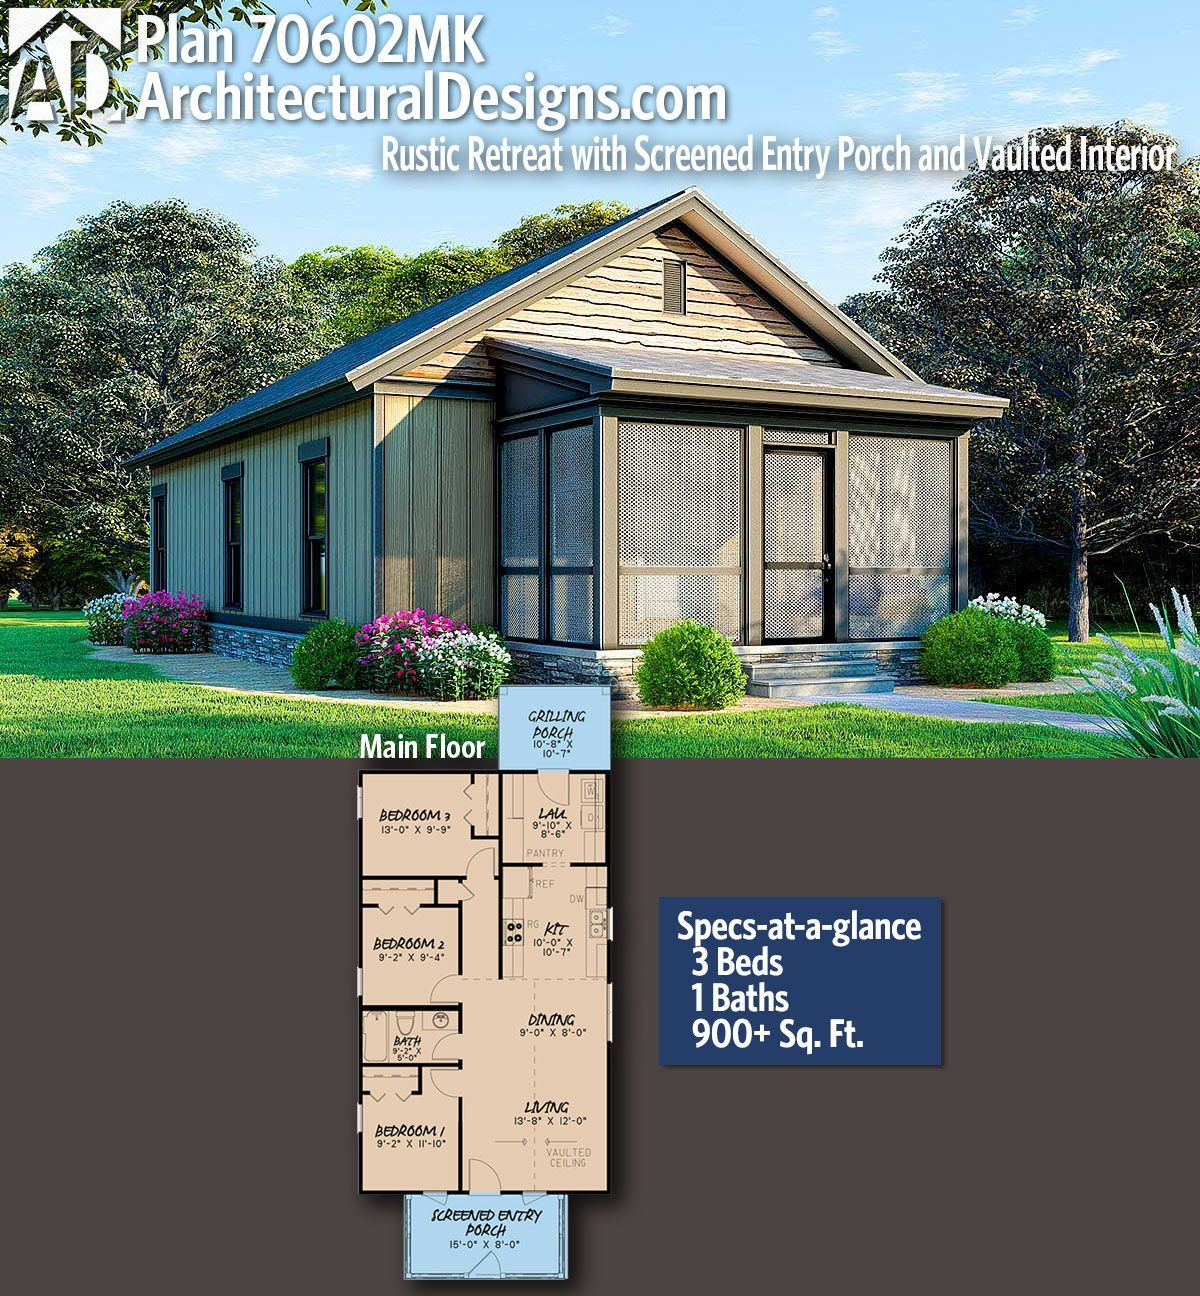 Architectural Designs Tiny Rugged House Plan 70602MK